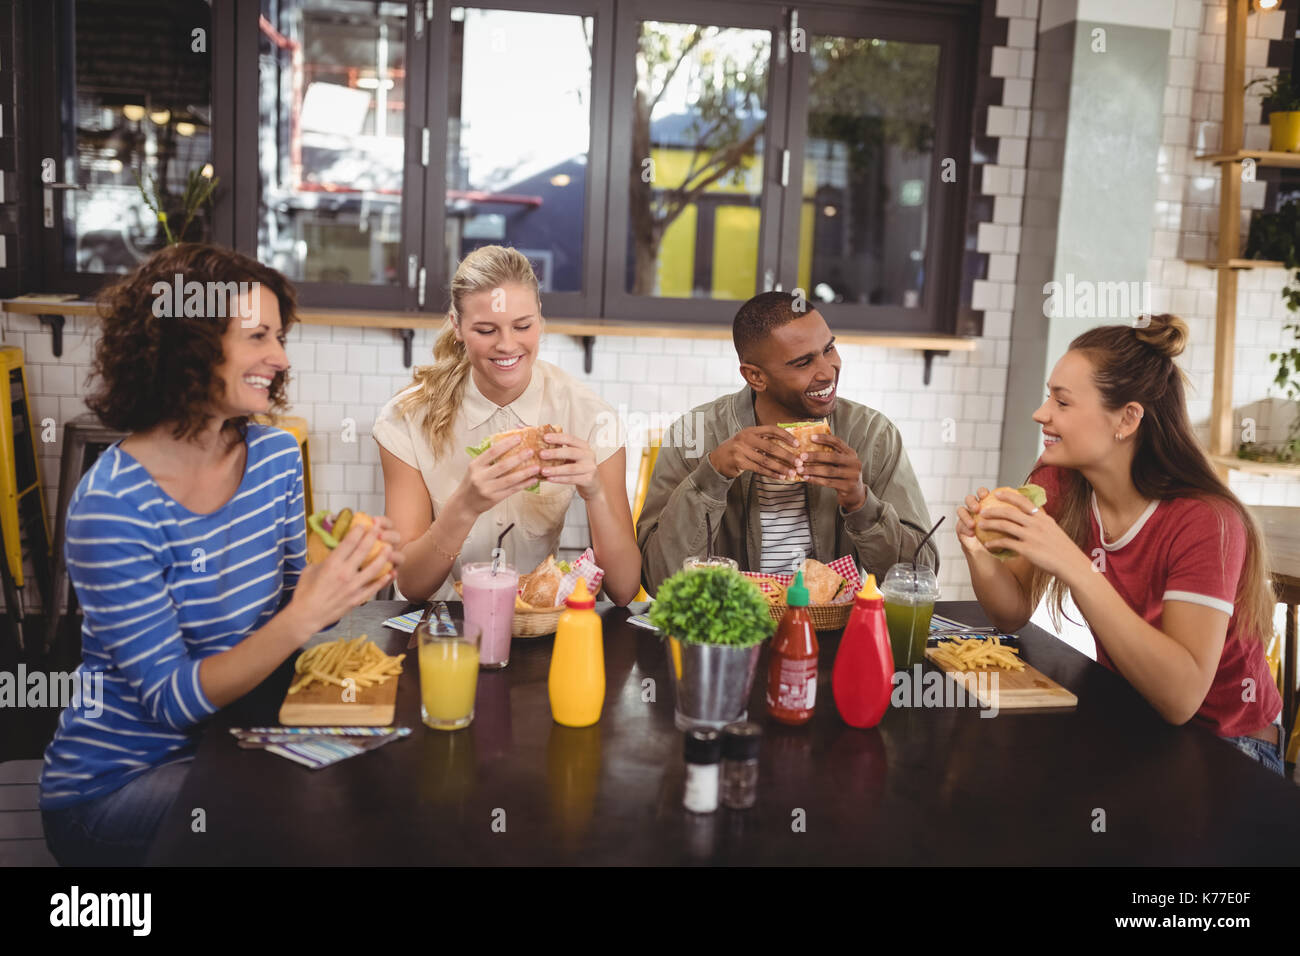 Smiling young friends eating food while sitting at table in coffee shop Photo Stock